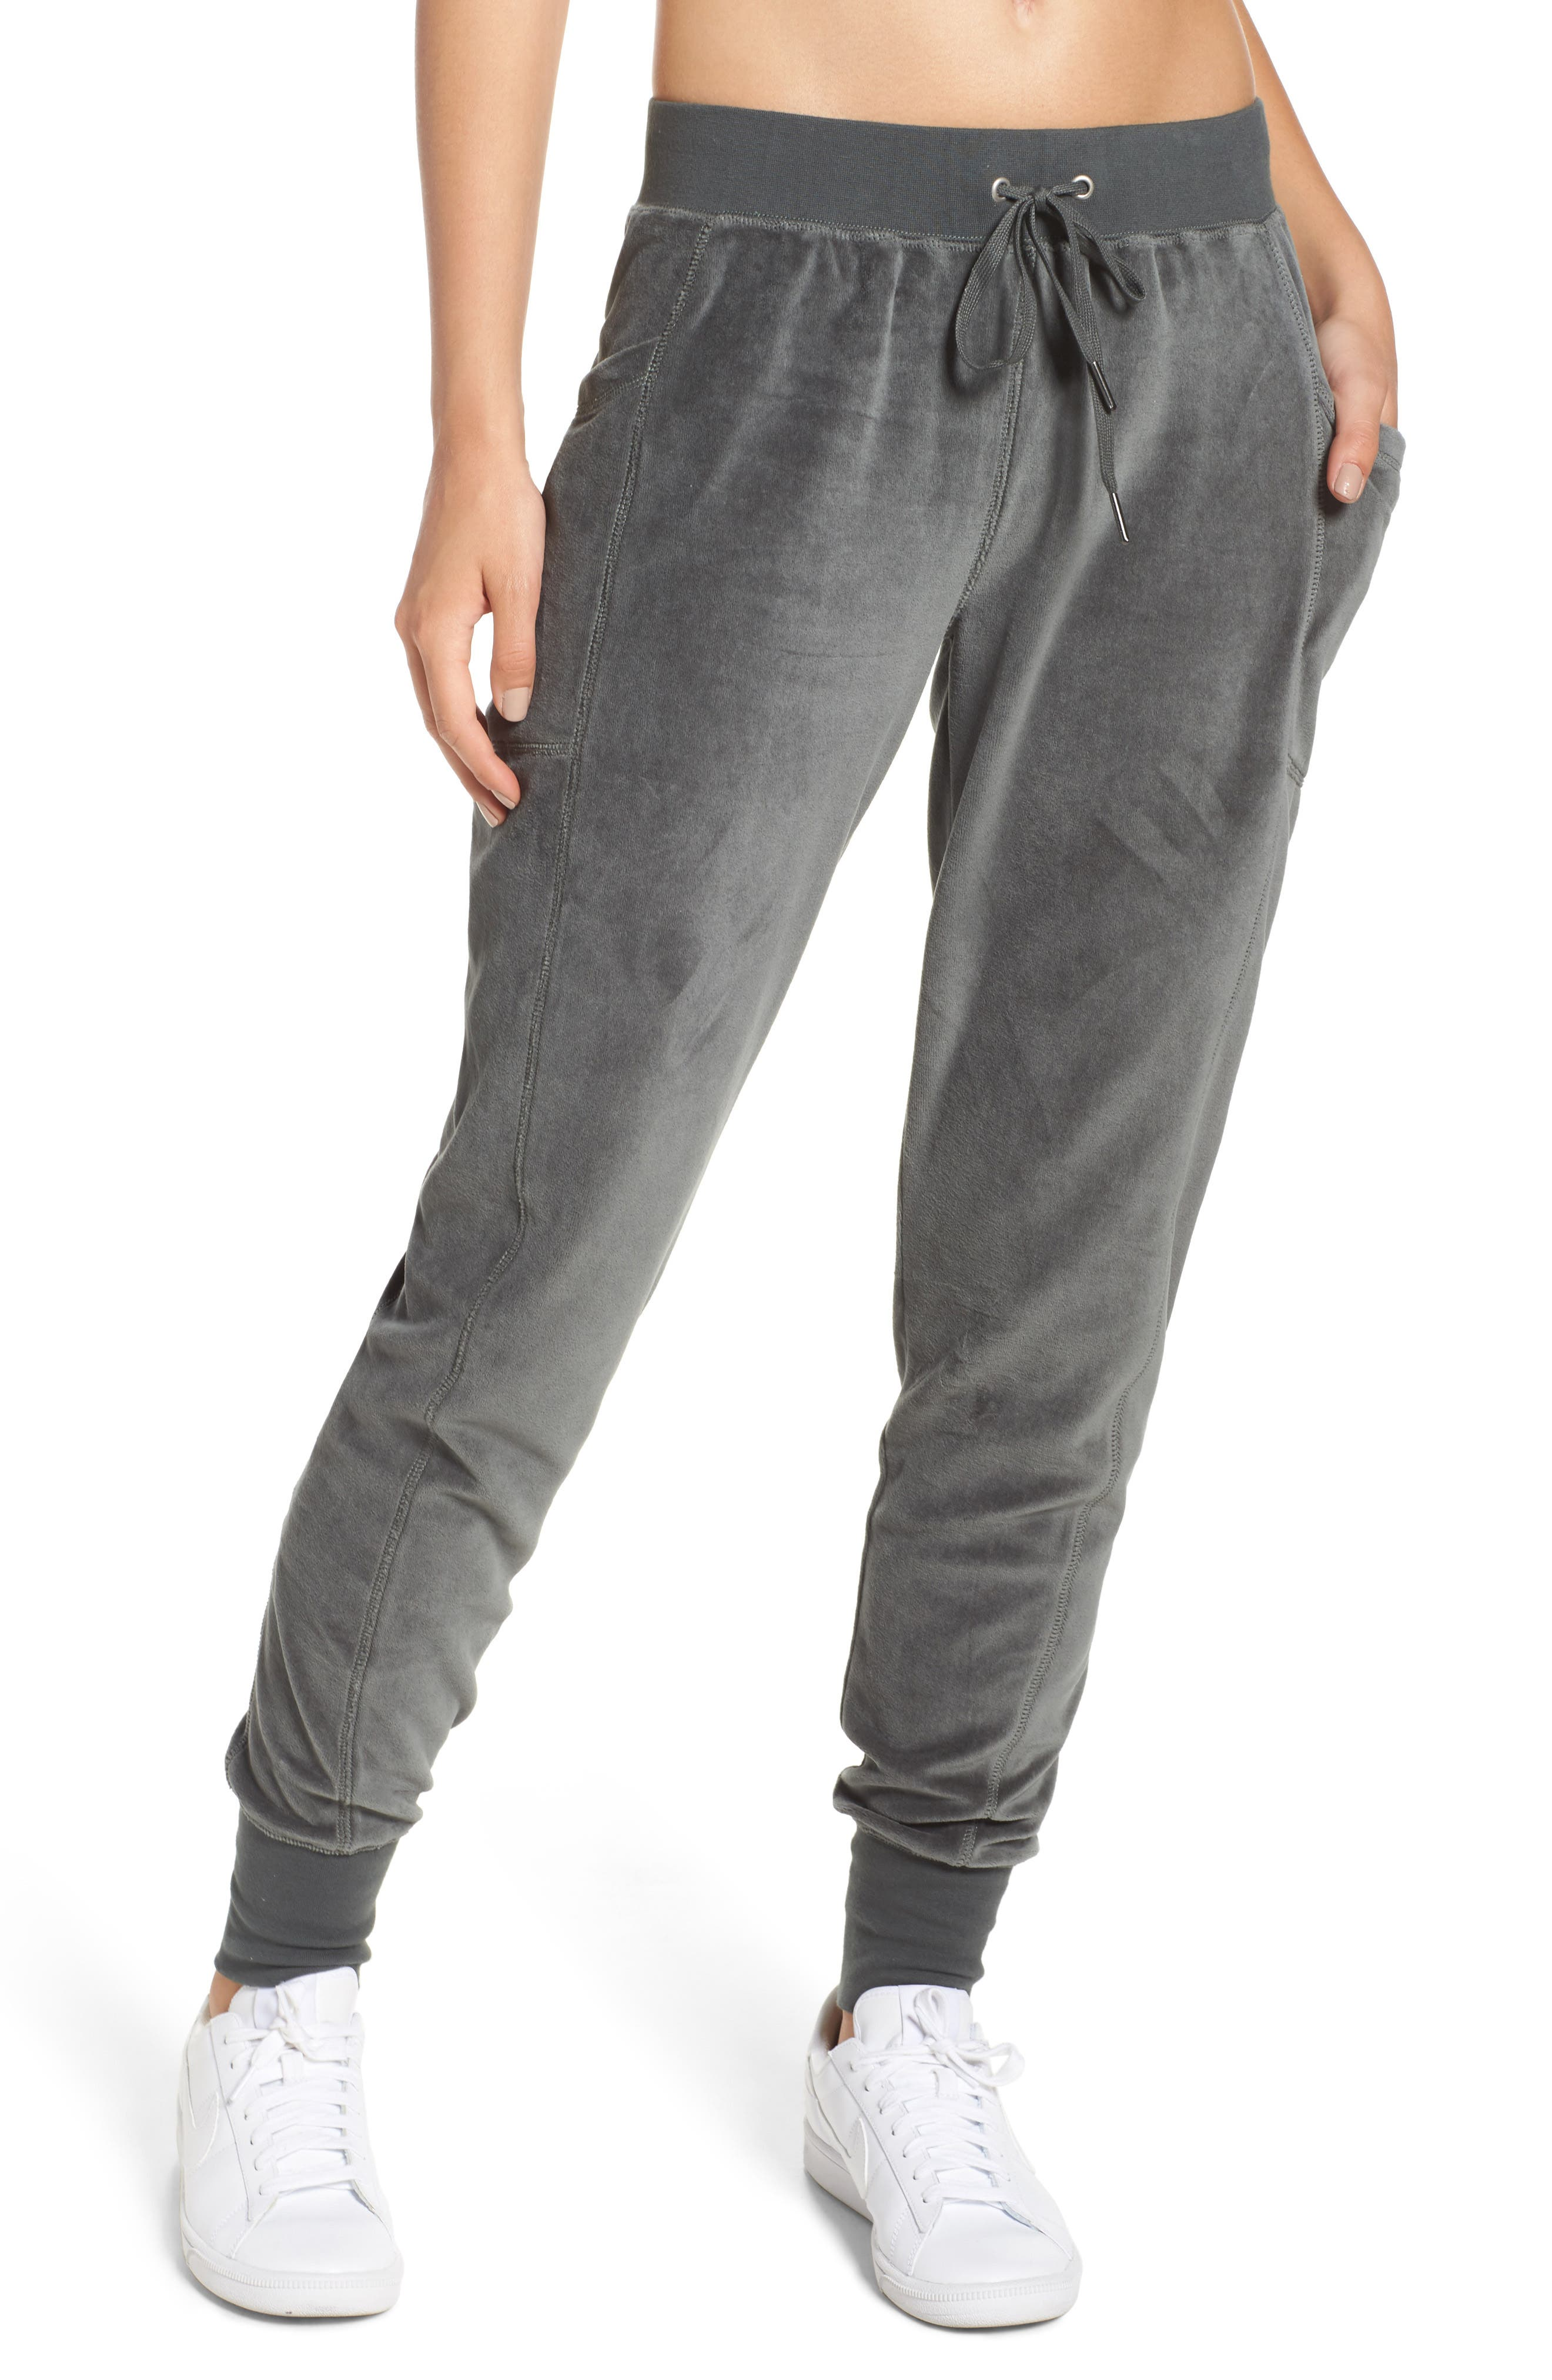 Zella Lexi Slim Velour Leggings